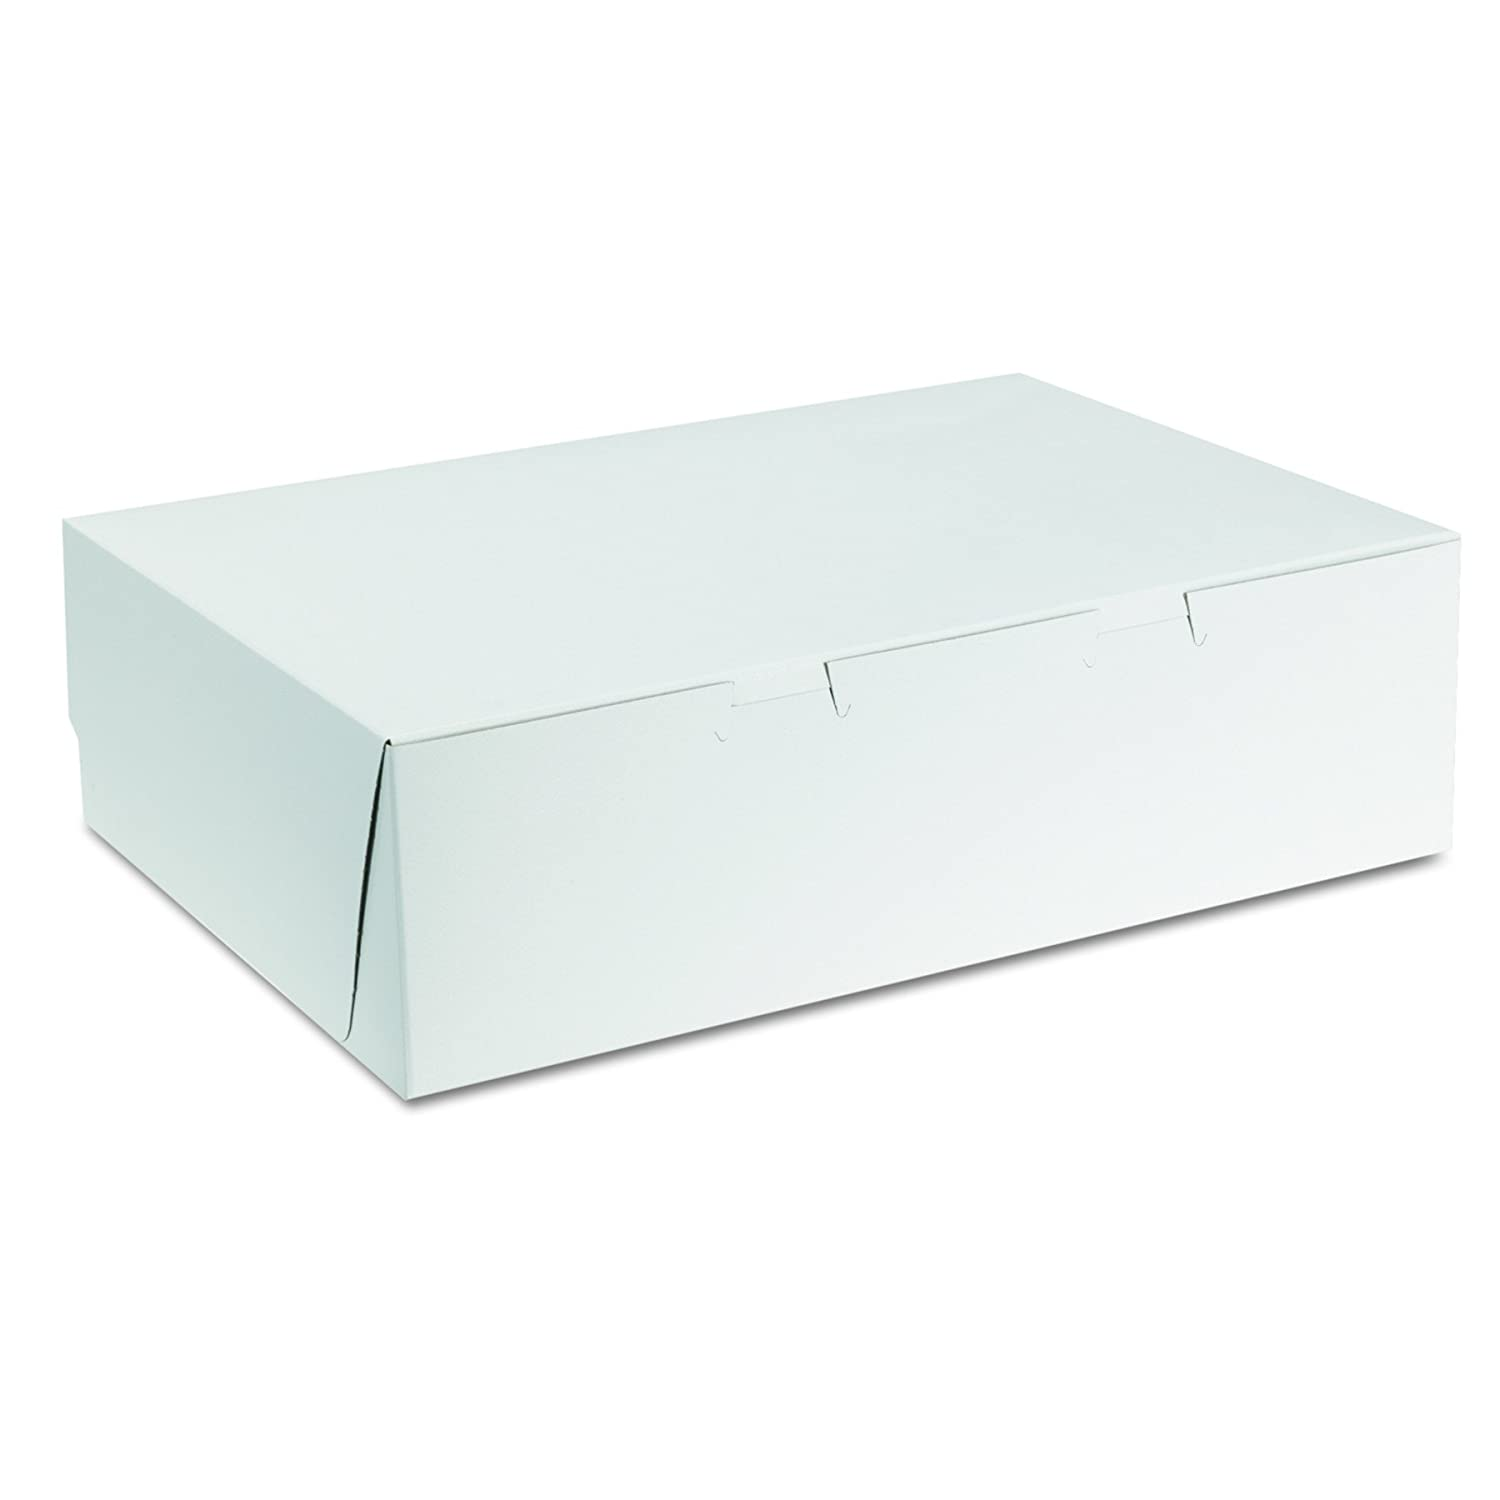 """Southern Champion Tray 1025 Premium Clay Coated Kraft Paperboard White Non-Window Sheet Cake and Utility Box, 14"""" Length x 10"""" Width x 4"""" Height, 1/4 Sheet (Case of 100)"""